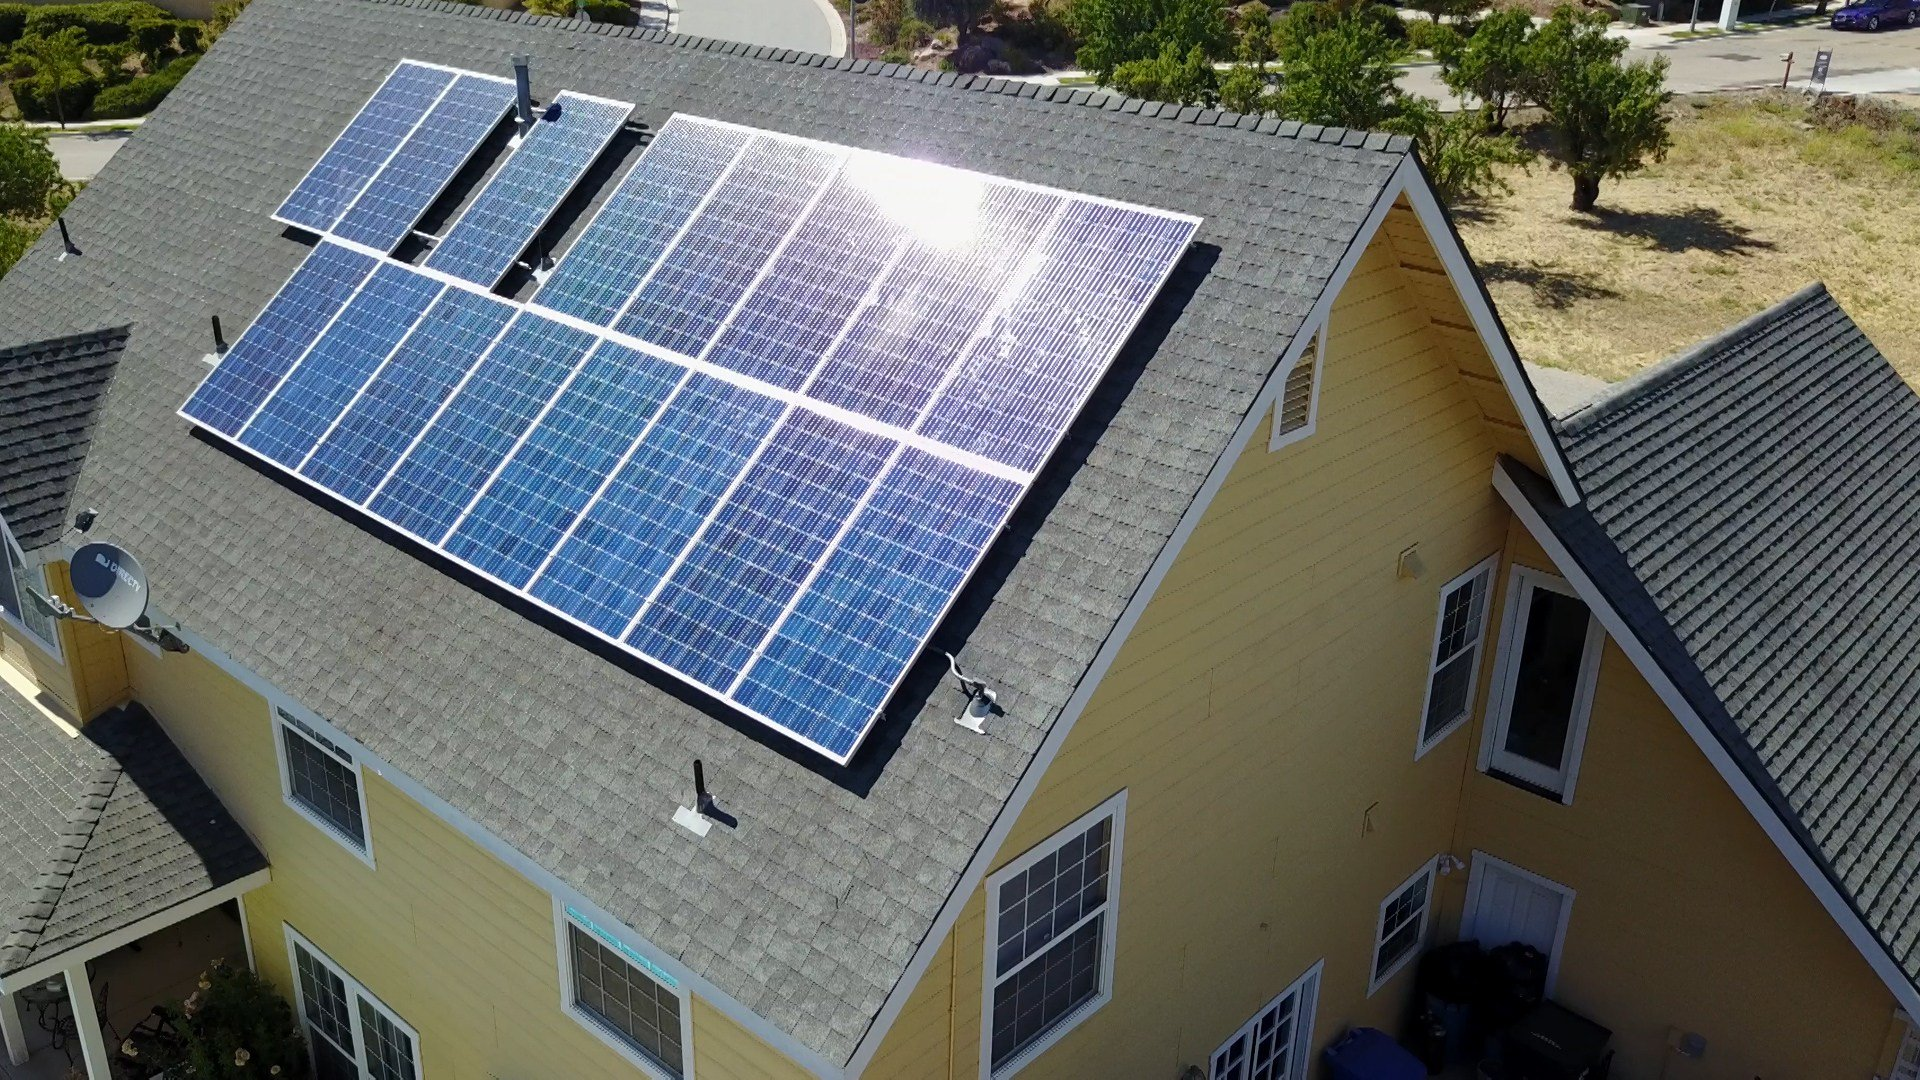 California becomes 1st U.S. state to mandate solar for new homes